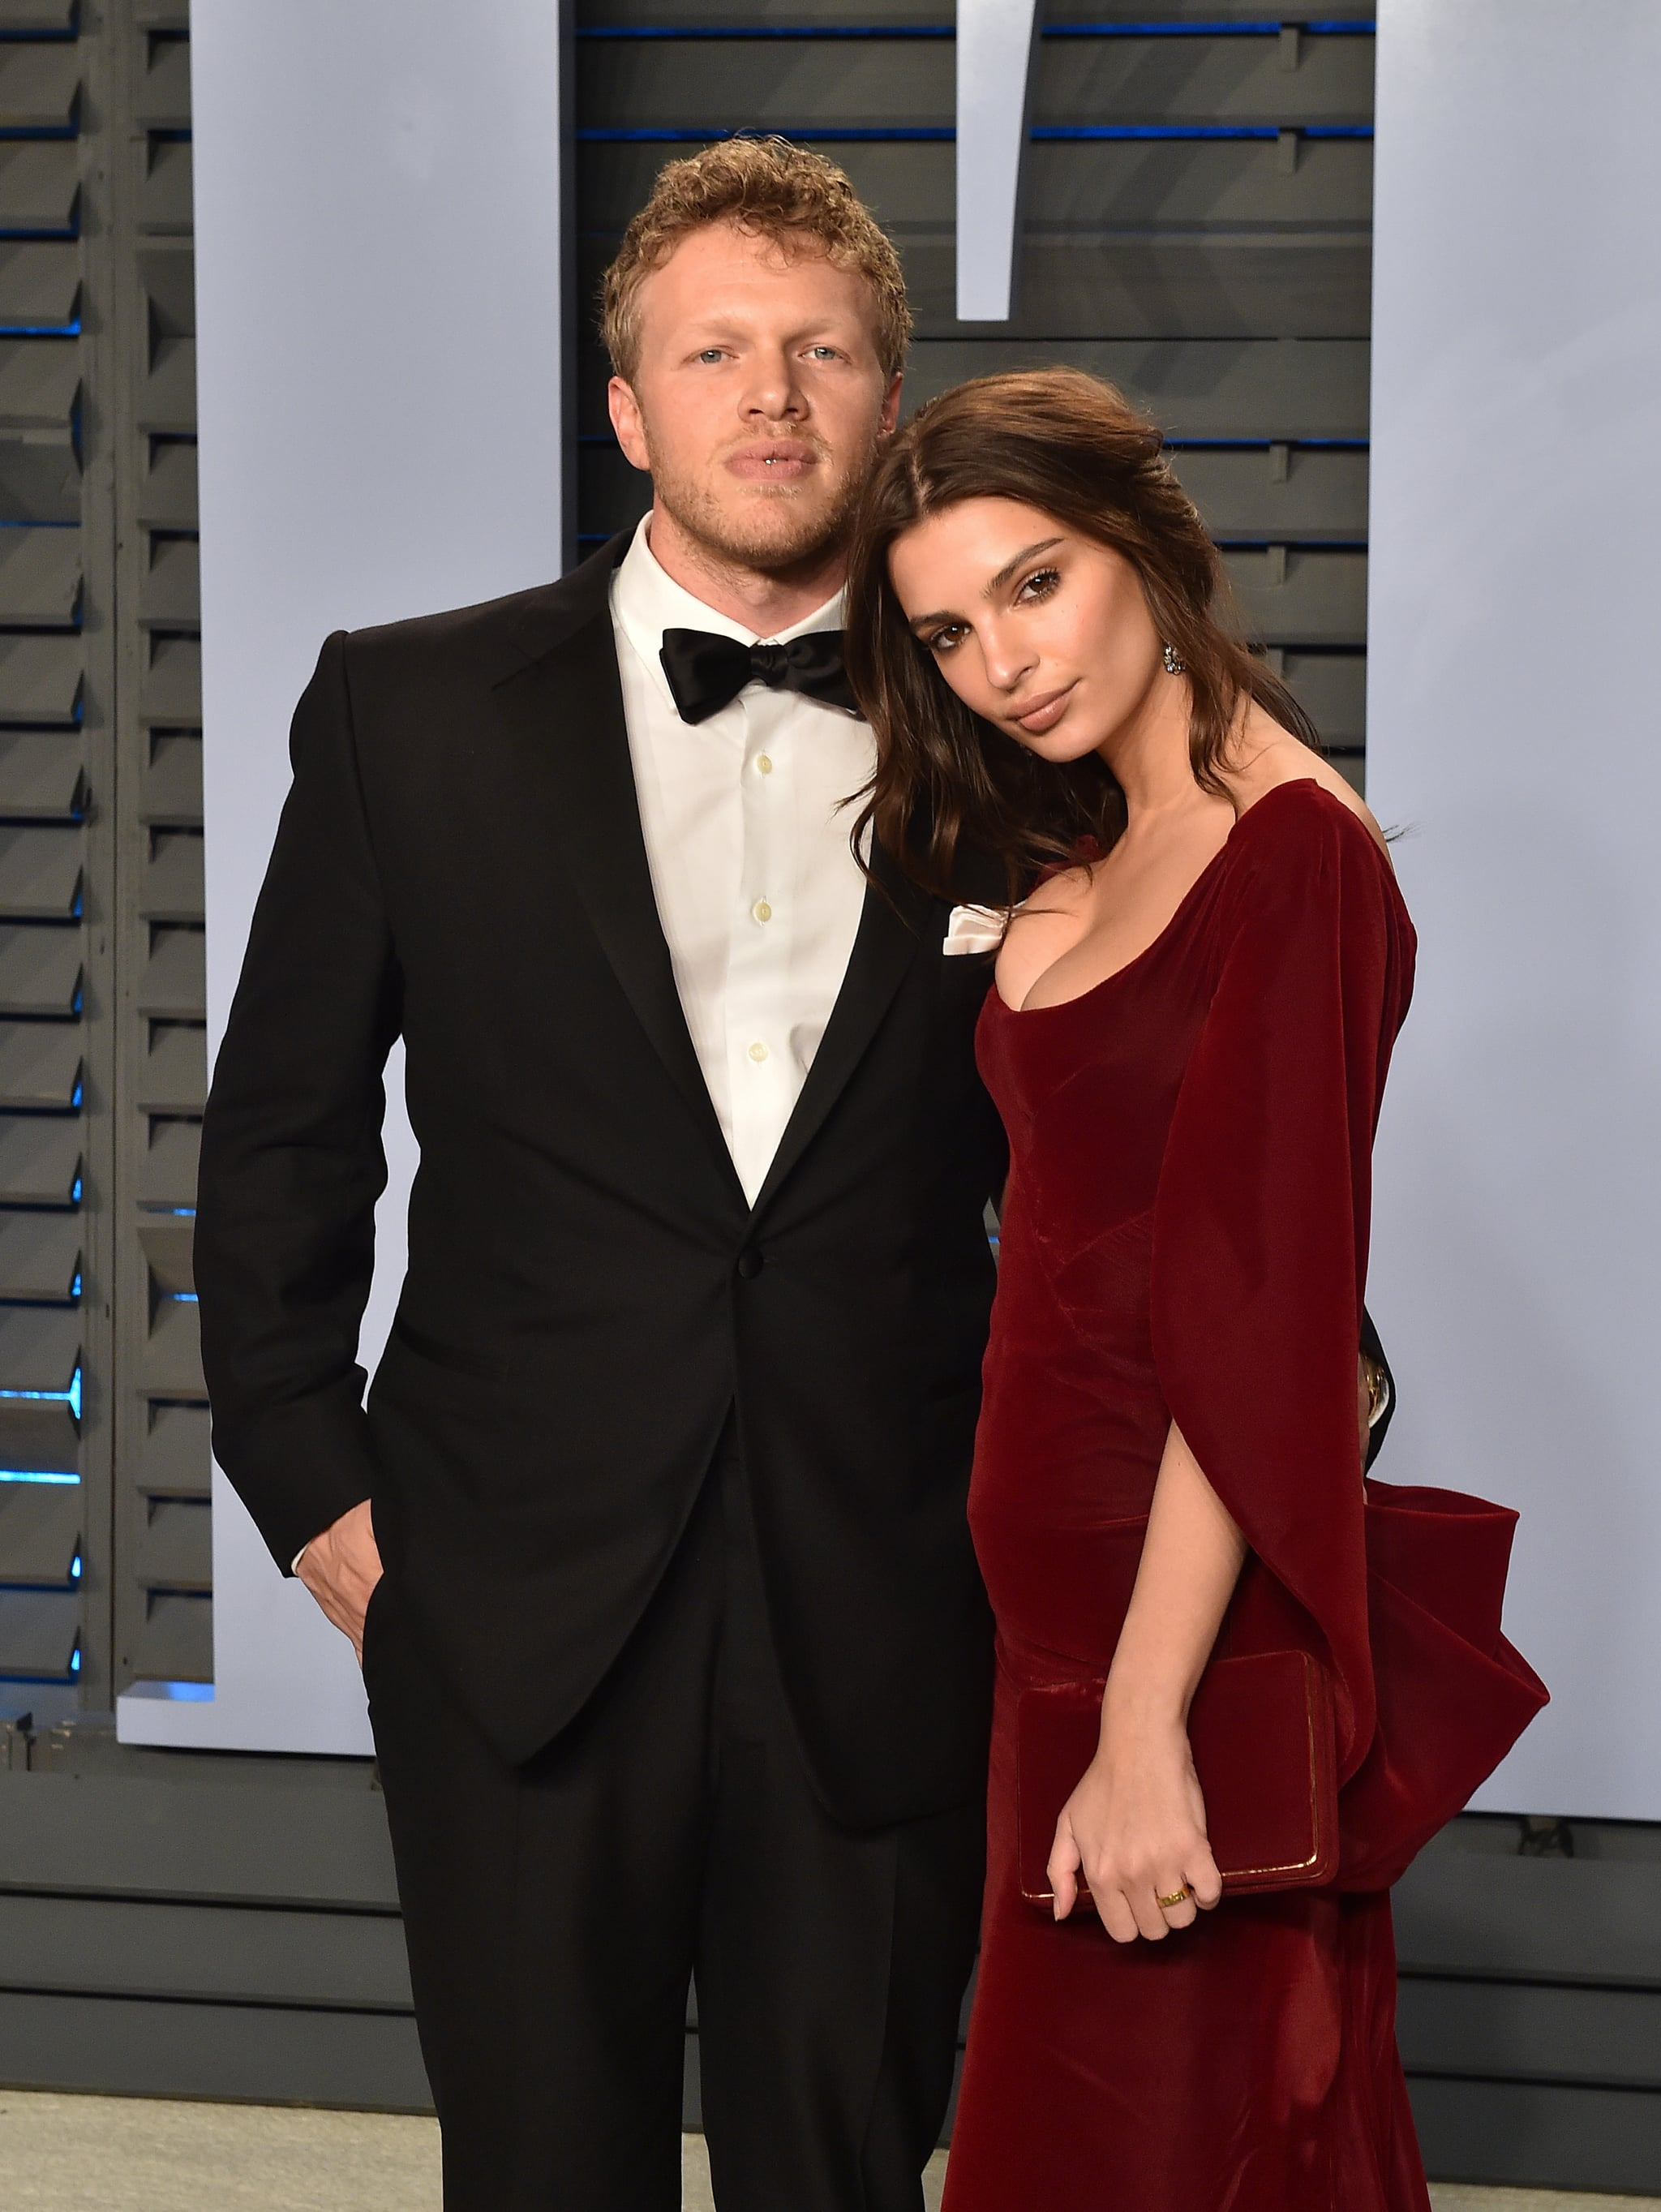 BEVERLY HILLS, CA - MARCH 04:  Actors Sebastian Bear-McClard (L) and Emily Ratajkowski attend the 2018 Vanity Fair Oscar Party hosted by Radhika Jones at Wallis Annenberg Centre for the Performing Arts on March 4, 2018 in Beverly Hills, California.  (Photo by Axelle/Bauer-Griffin/FilmMagic)